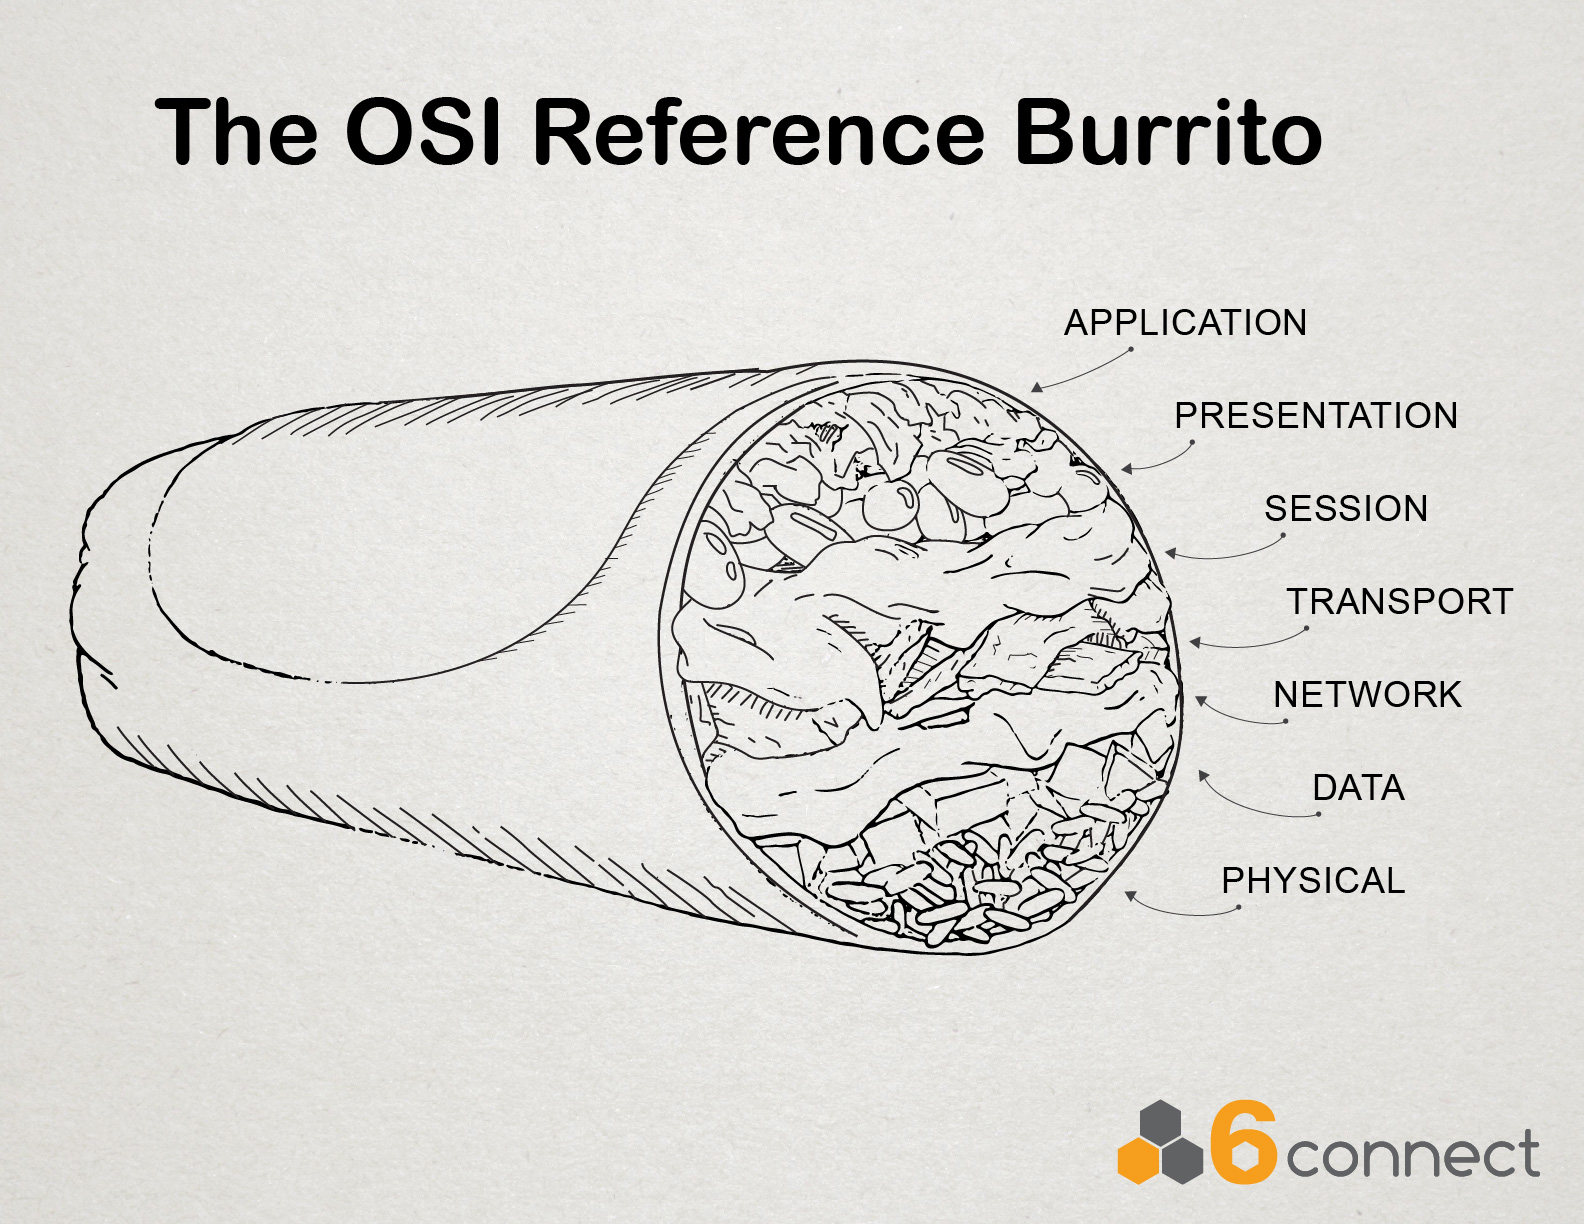 The OSI Reference Burrito